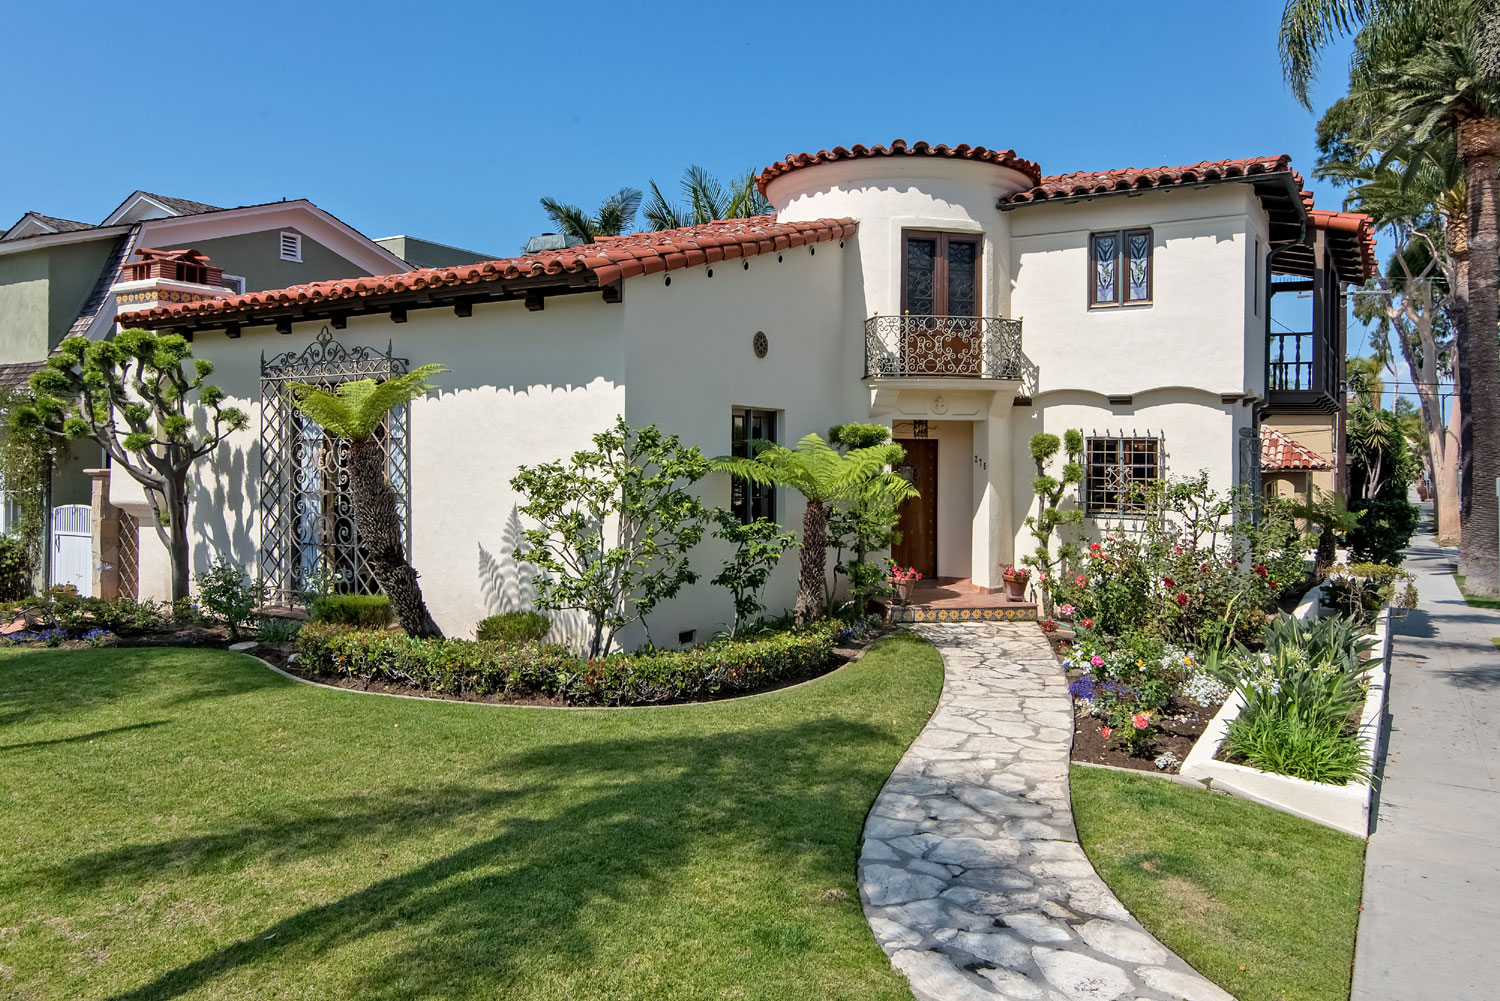 The essence of classic, California Spanish architecture is captured in this 2,300-square-foot, turreted home in the historic Long Beach enclave of Belmont Heights. Its elegant exterior exudes privacy, yet encloses a lush, open courtyard.